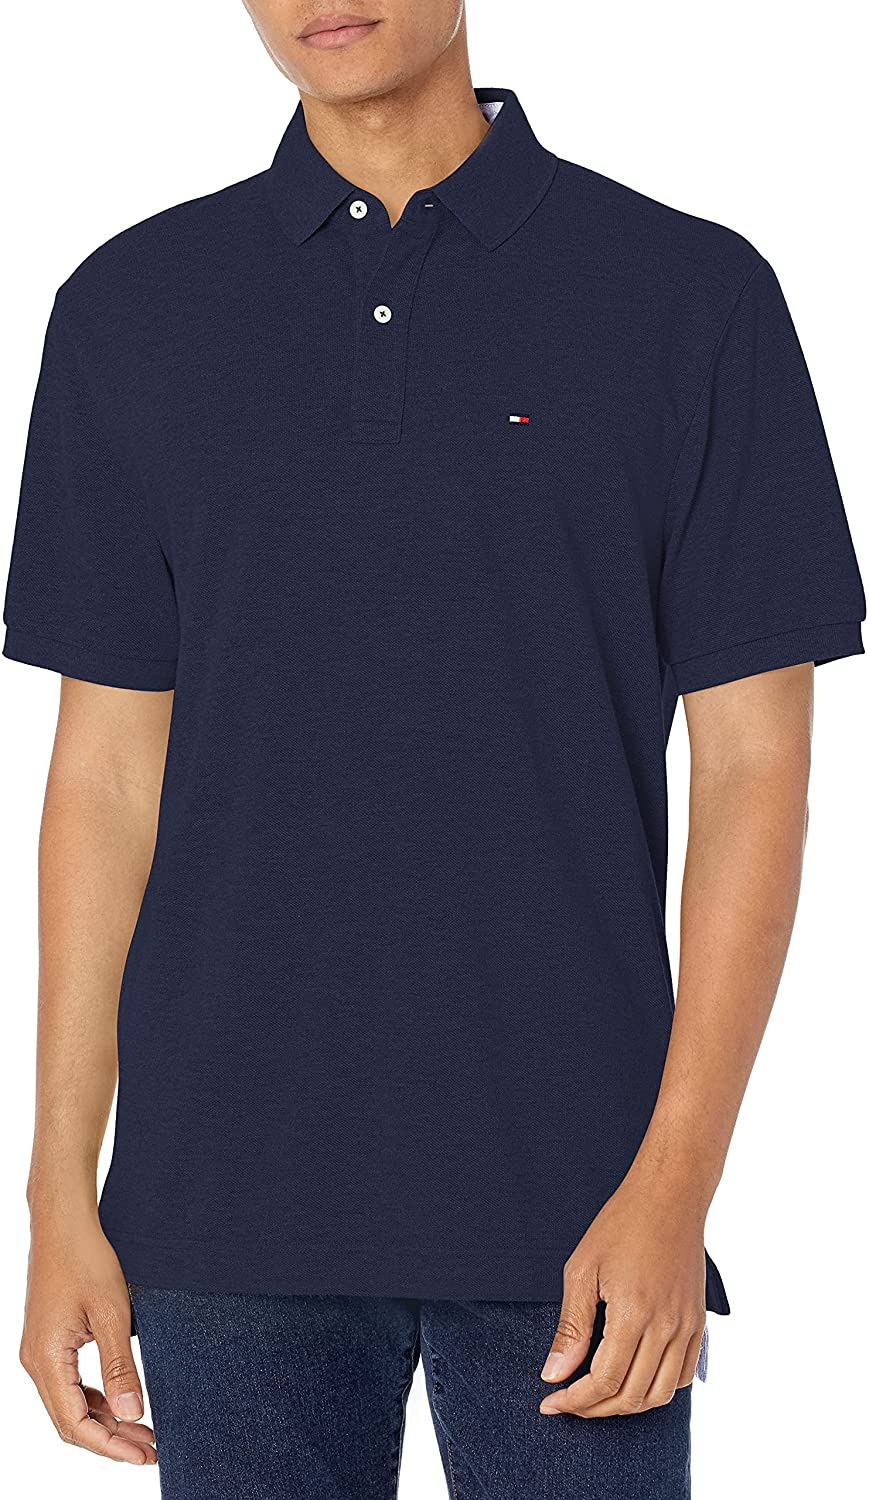 Tommy Hilfiger Men's Big & Tall Short Sleeve Polo in Classic Fit